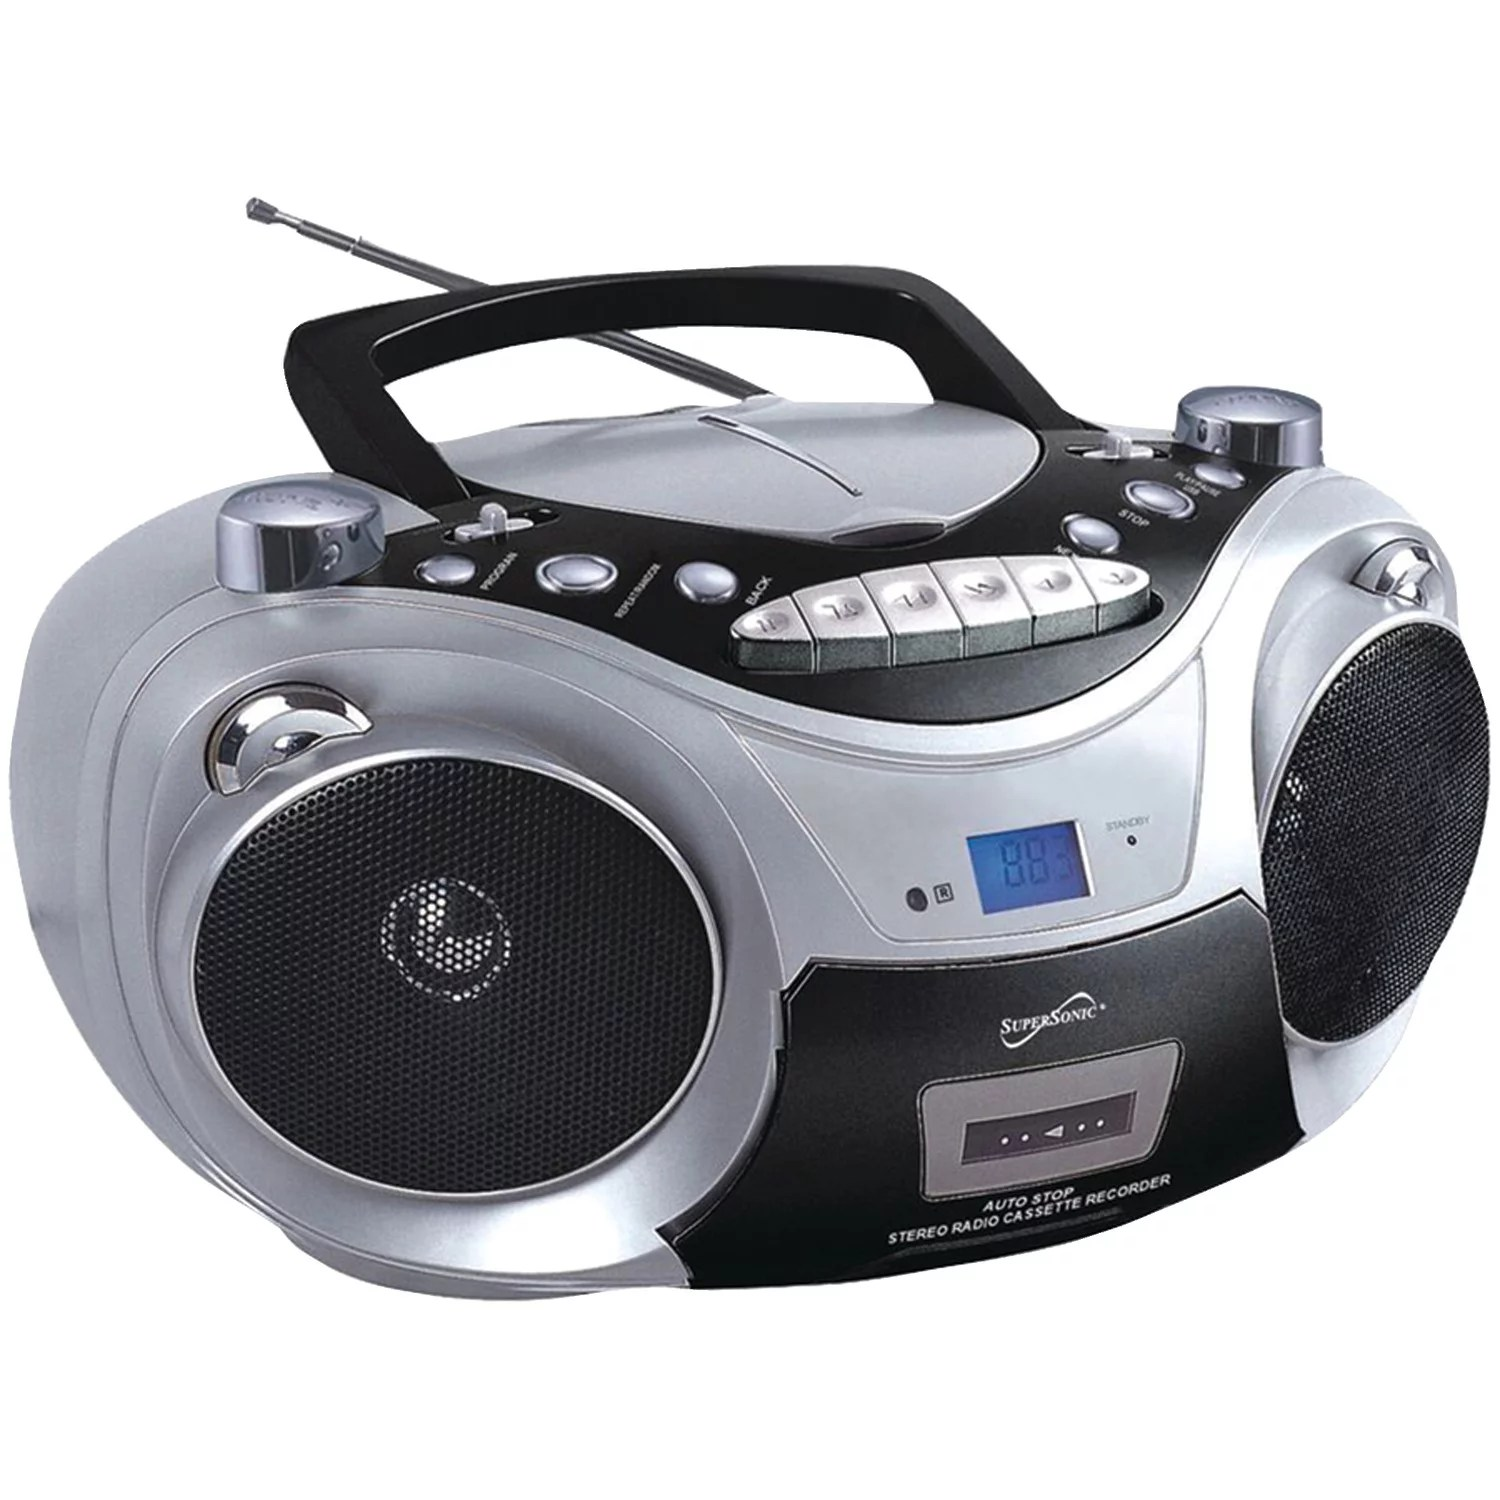 hight resolution of supersonic sc 709 silver portable mp3 cd player with cassette recorder am fm radio silver walmart com